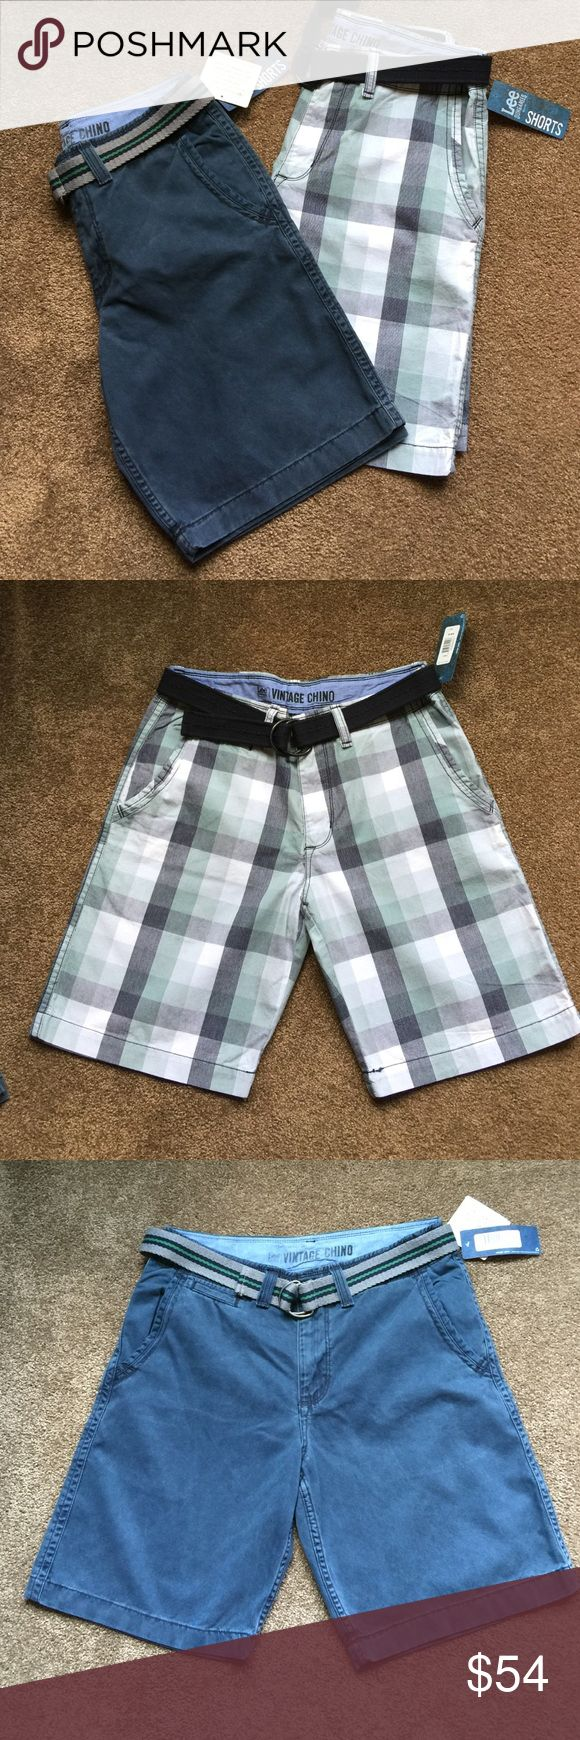 "NWT Pair of Men's Lee Dungaree Shorts NWT men's Lee Dungaree short set! There are two back pockets, two front pockets and are flat front style. They each come with a belt and have a 10"" inseam. Each pair has a retail value of $54.00 Lee Shorts Flat Front"